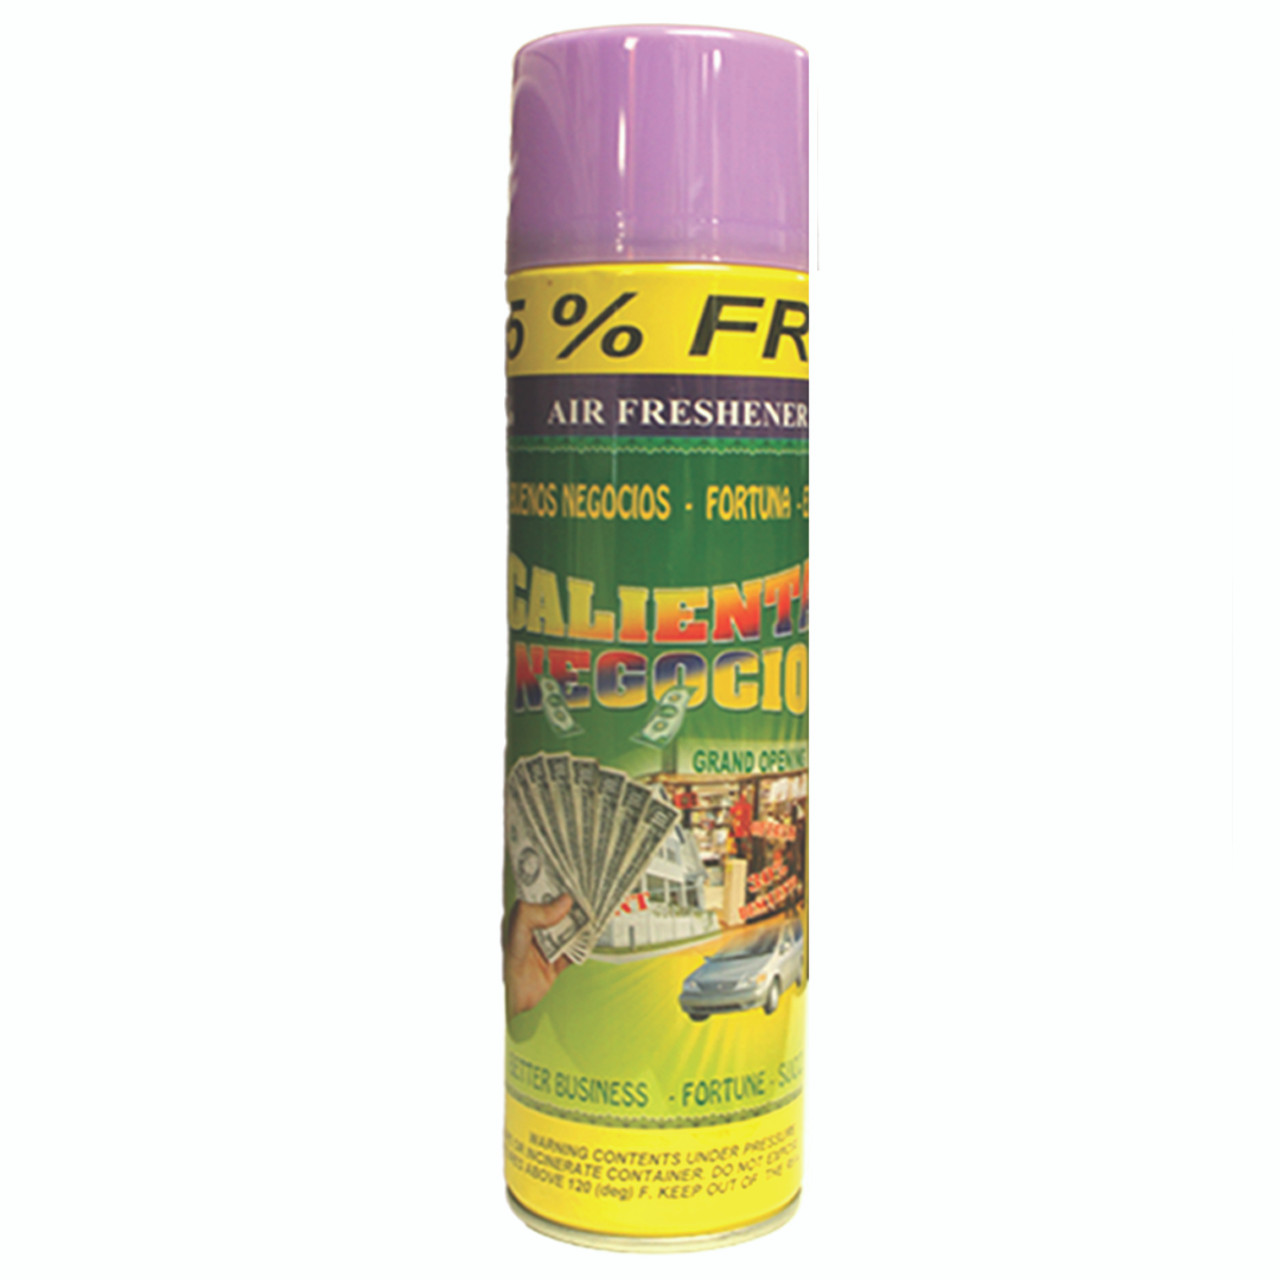 Spray Calienta Negocios - Air Freshener